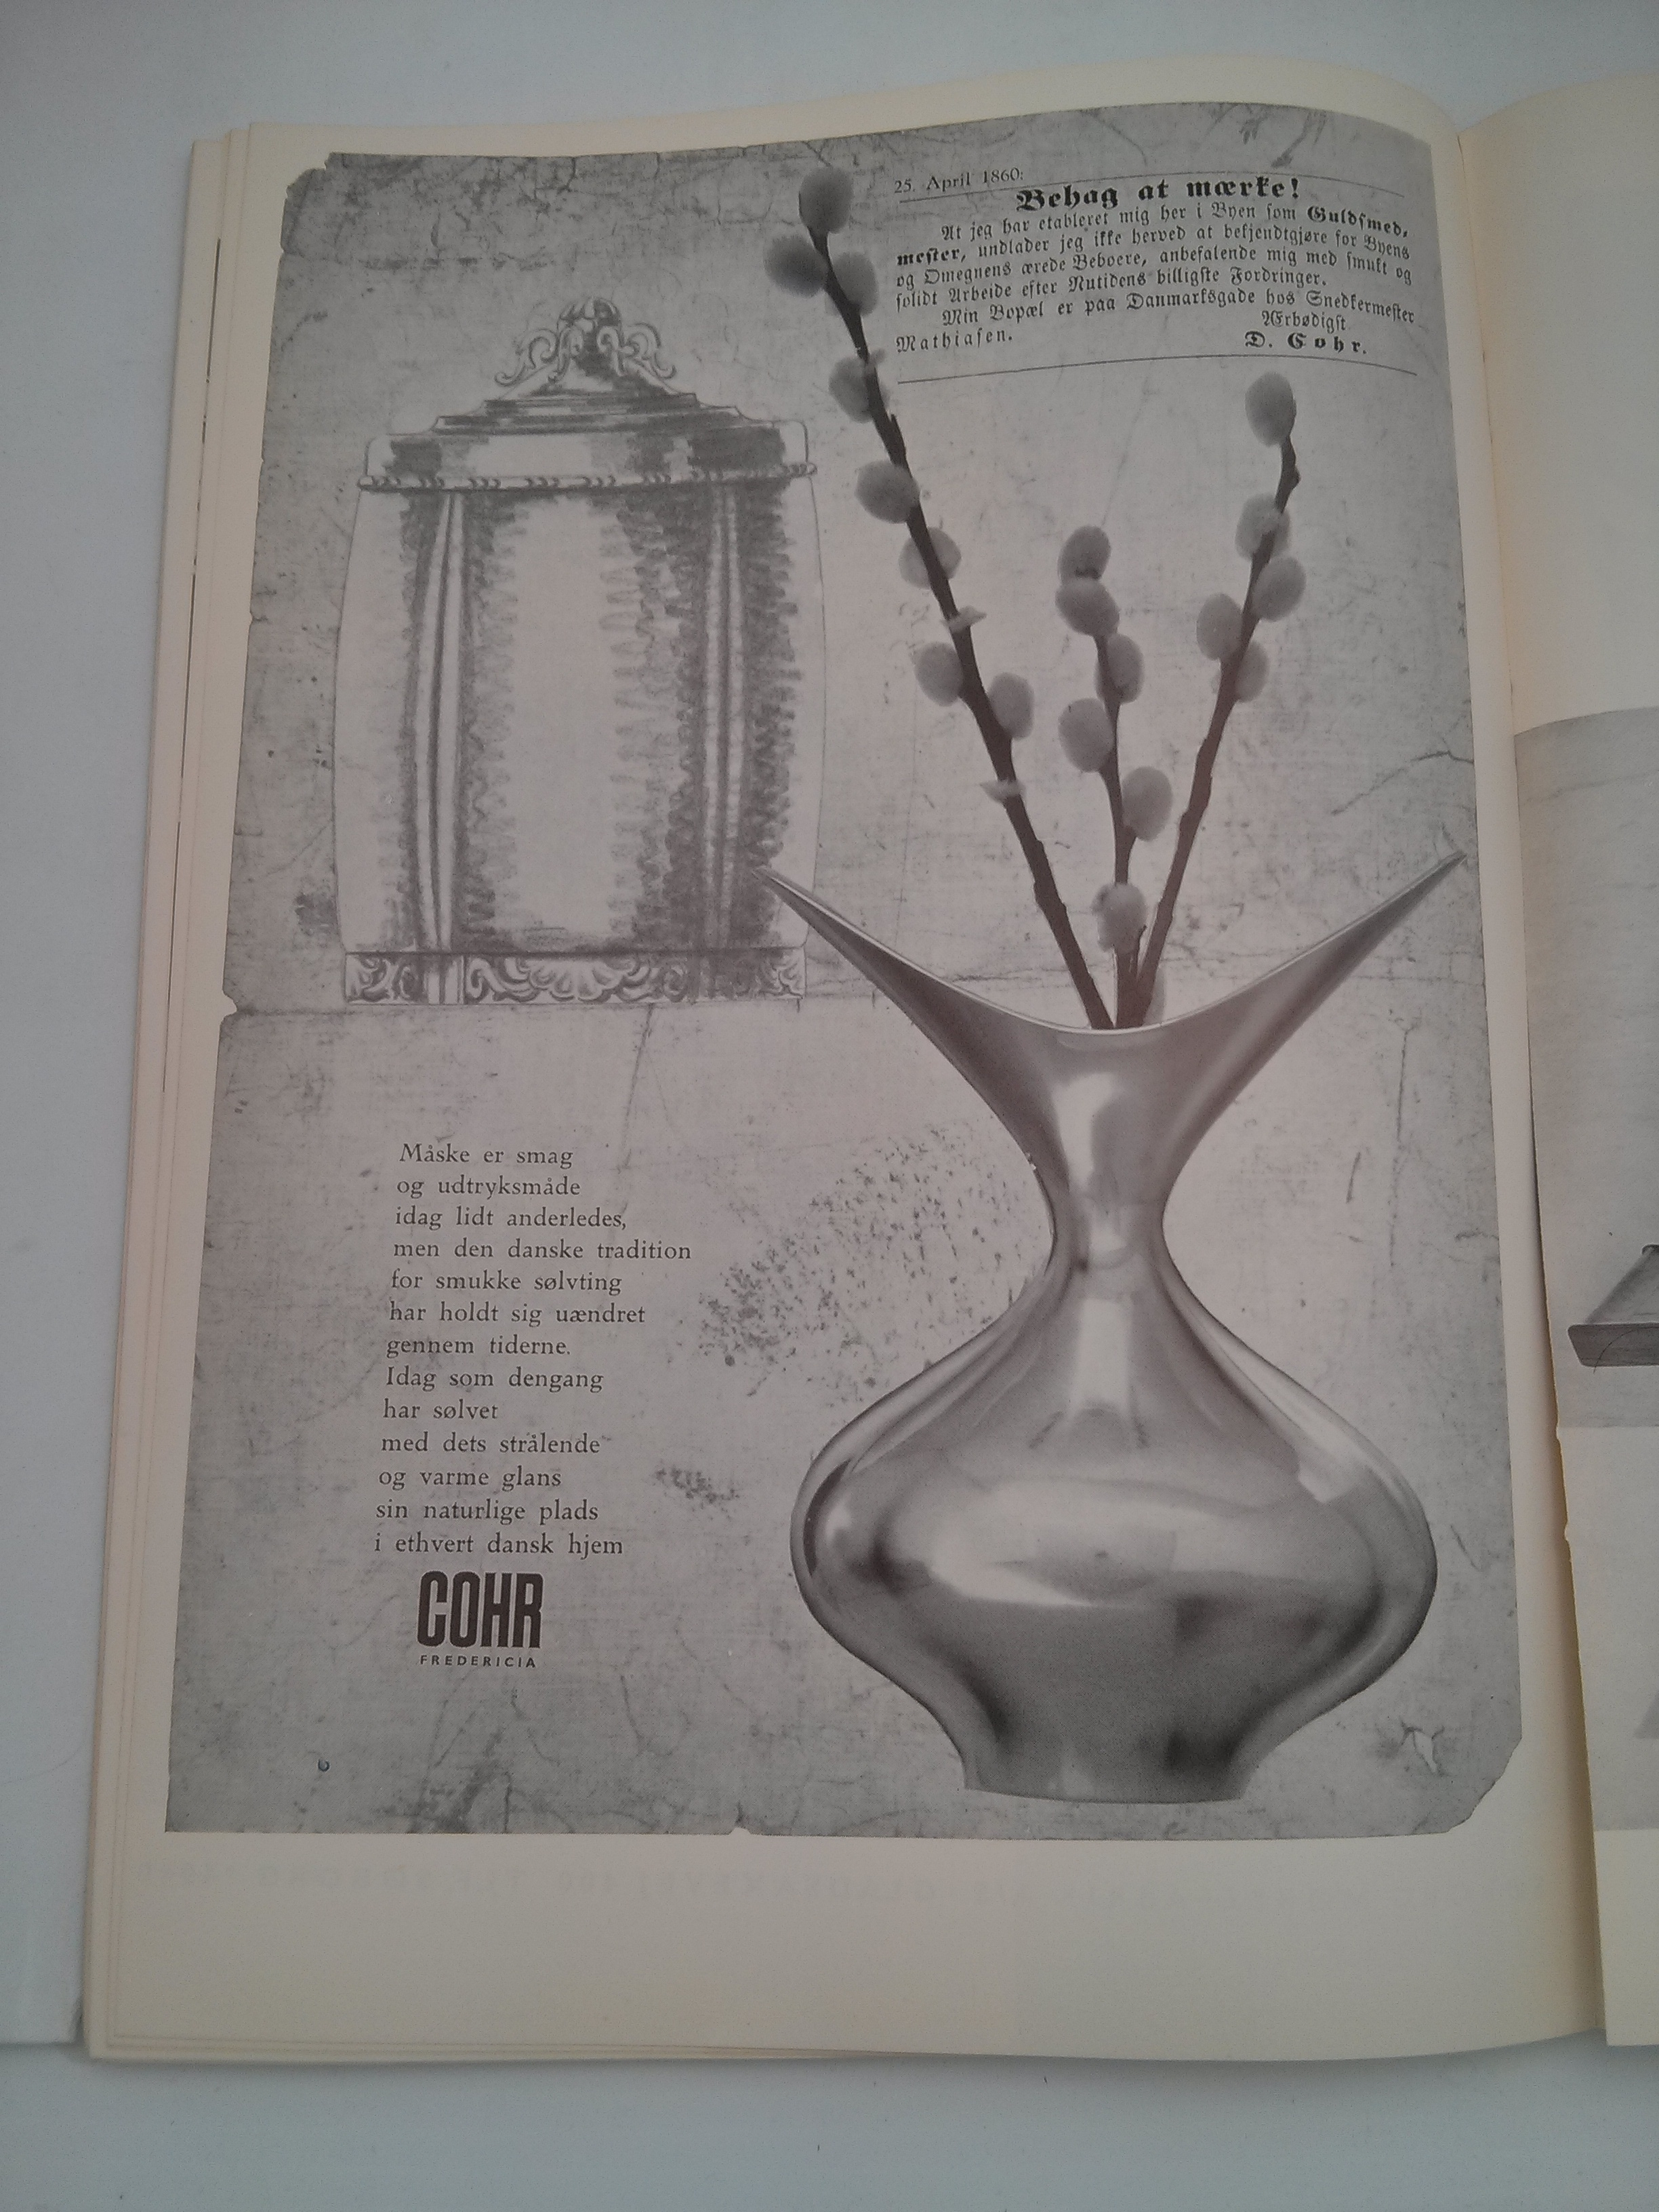 Two beautiful hollowware pieces are featured in this advertisement for Cohr.